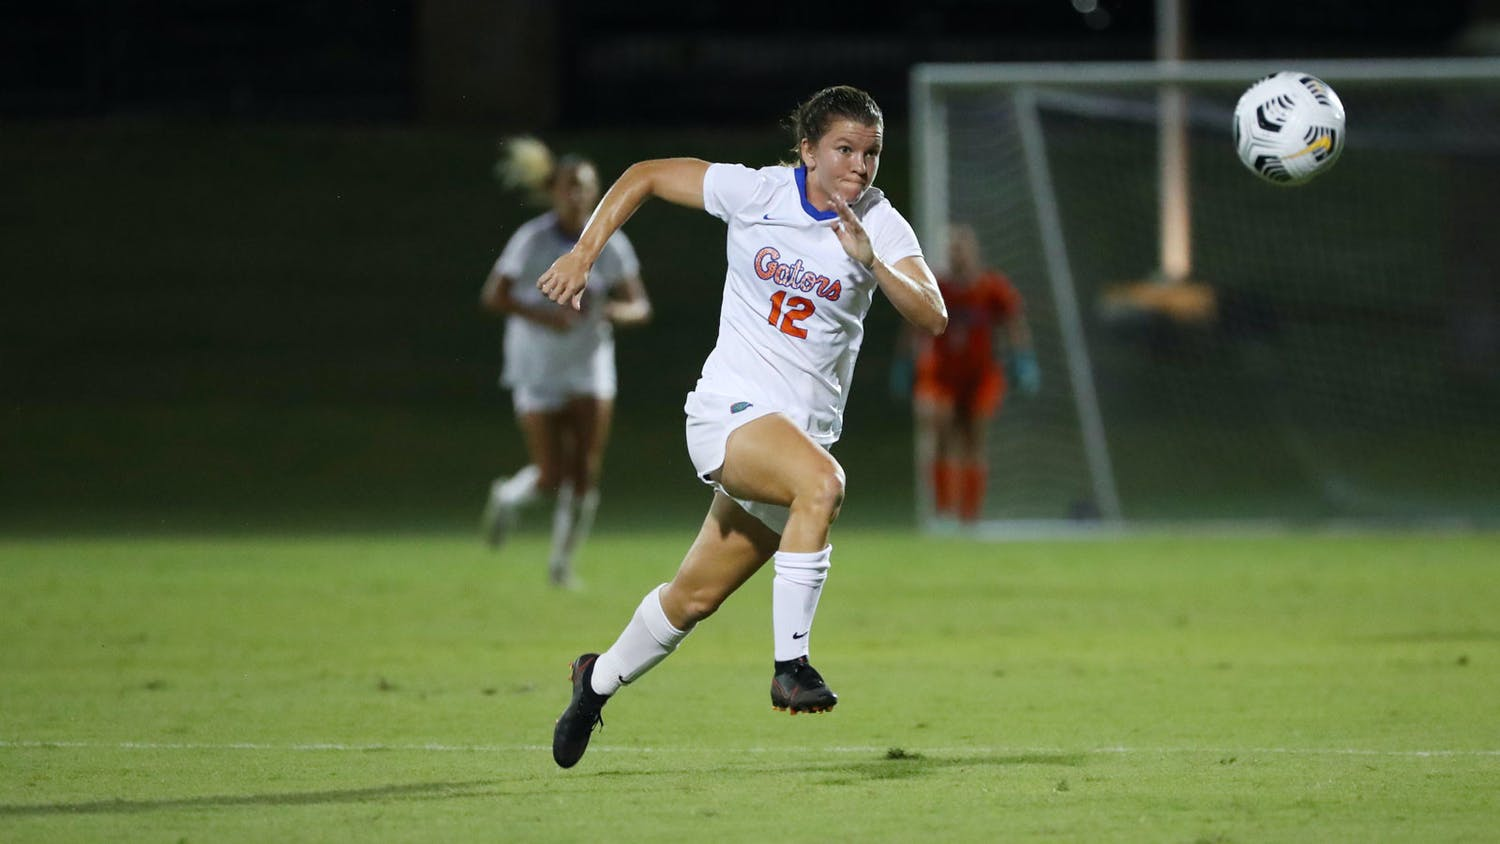 Florida sophomore Maddy Rhodes photographed during a game against Kentucky on Sept. 23.